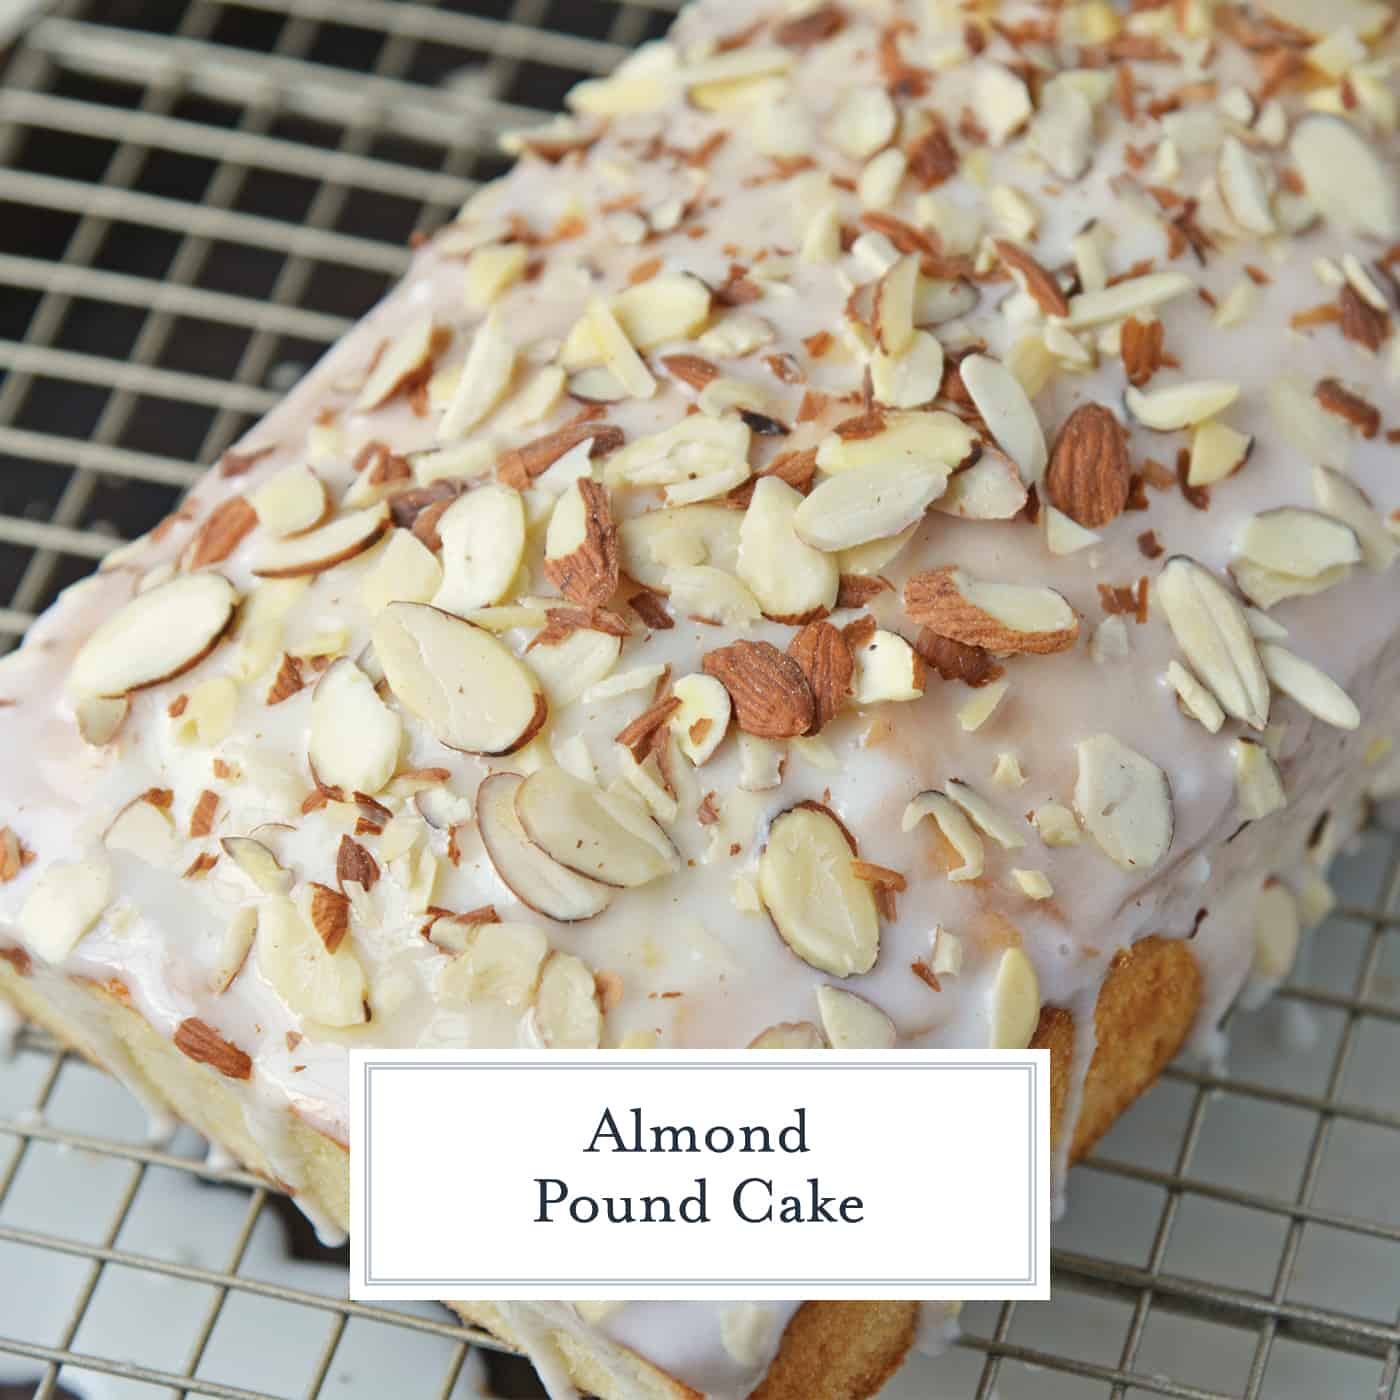 Almond Pound Cake The Best Pound Cake Recipe